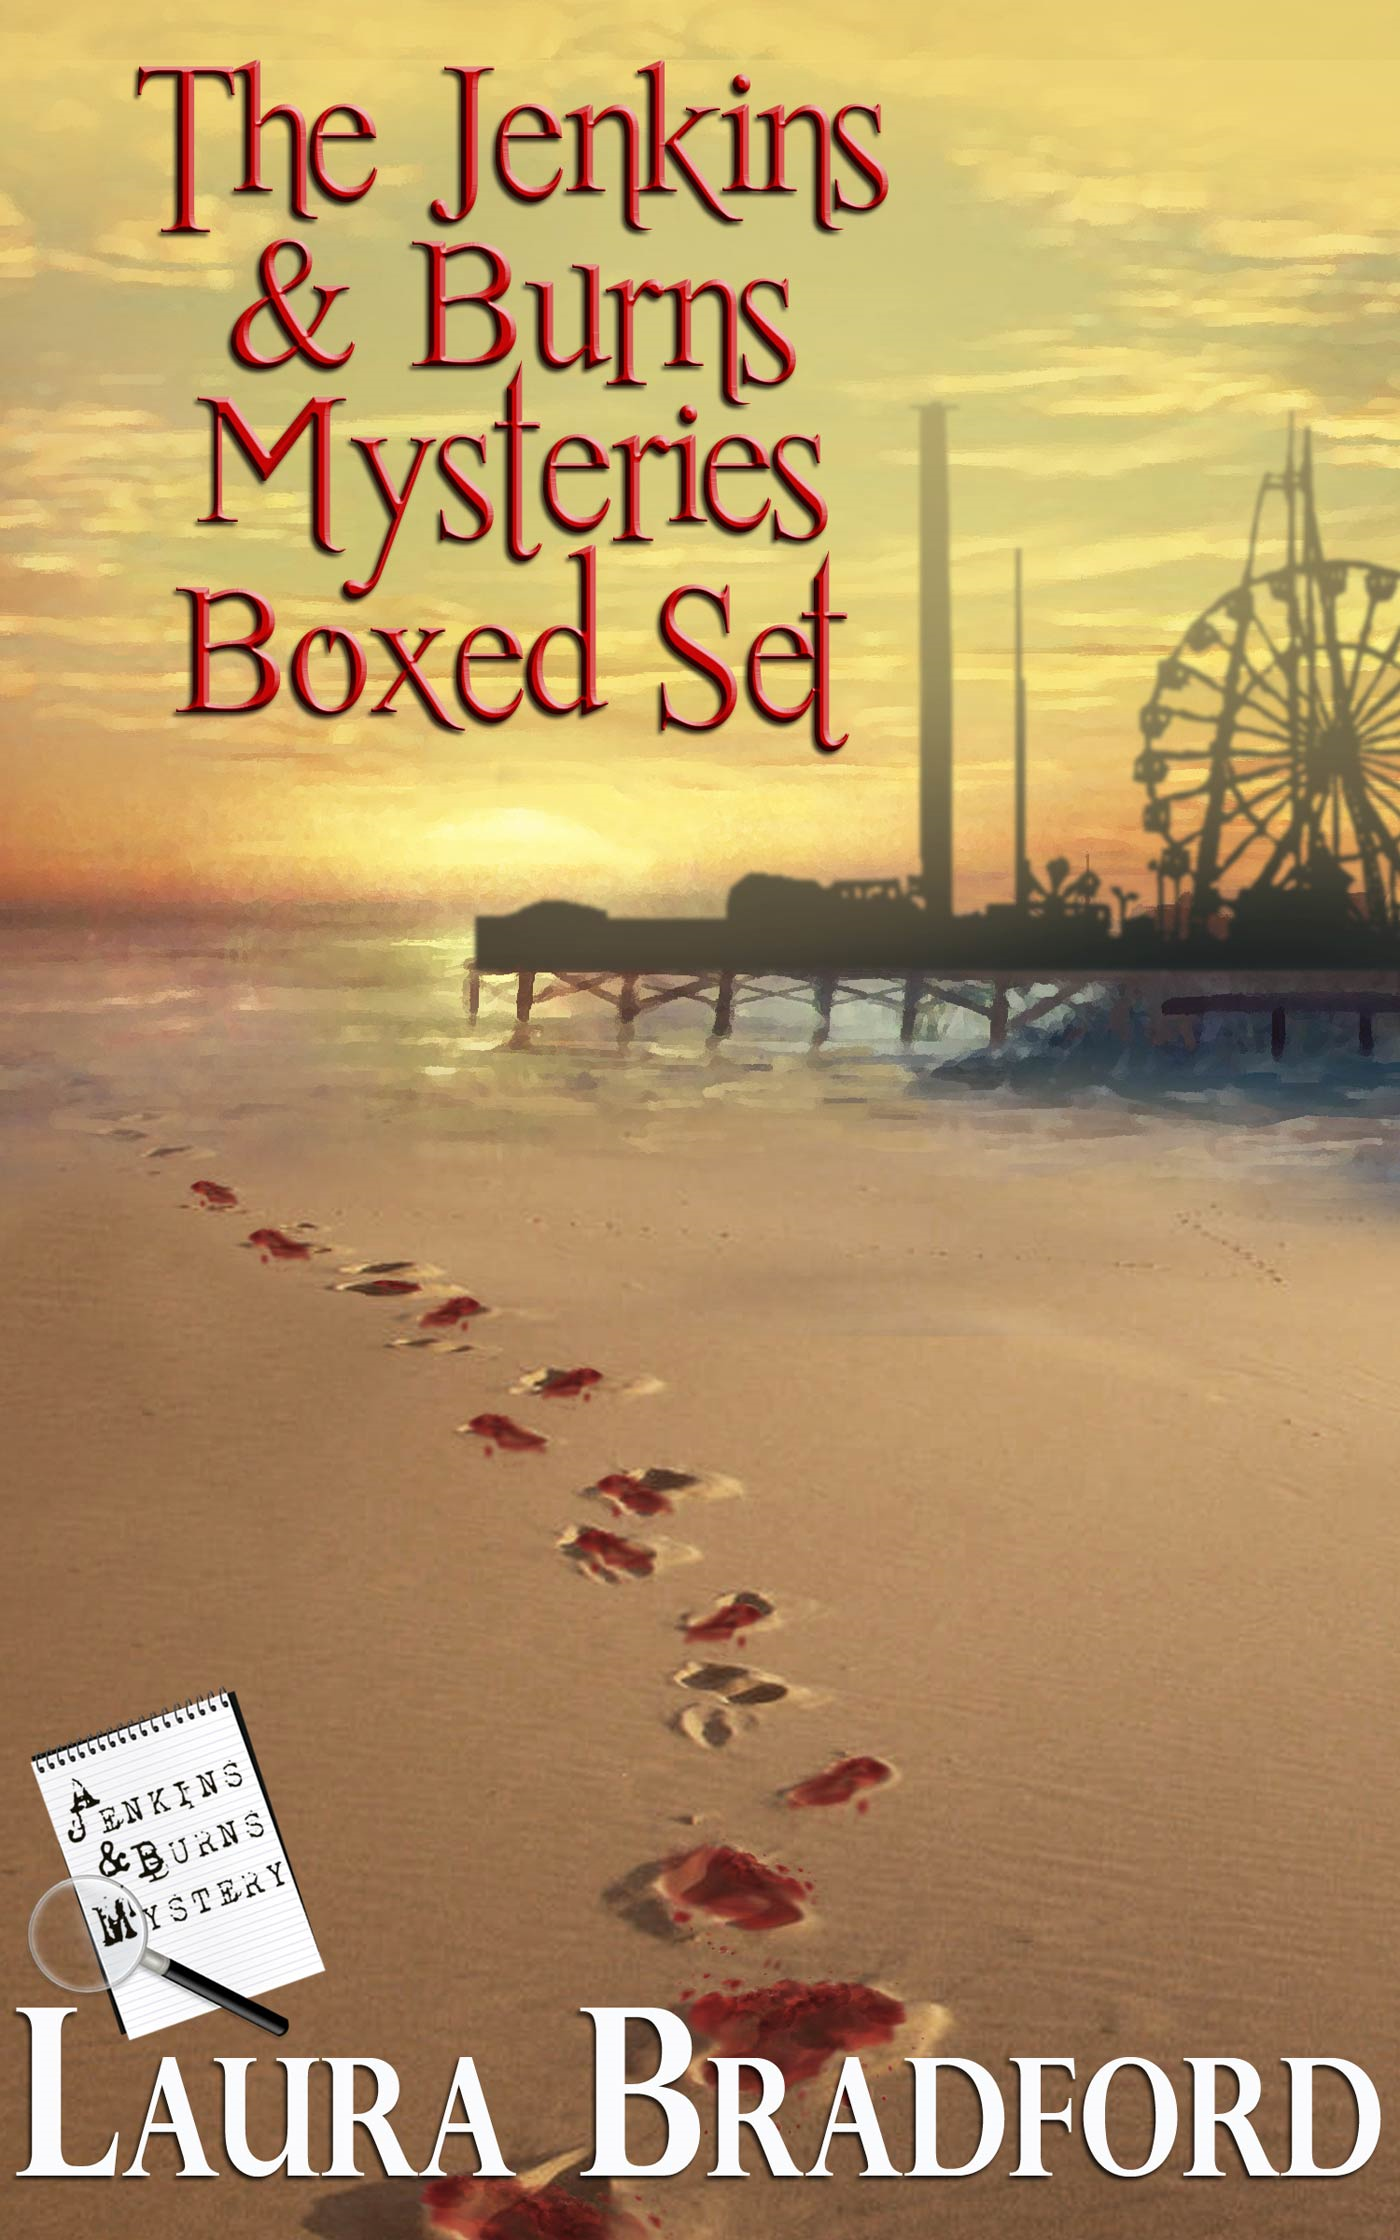 The Jenkins & Burns Mysteries Boxed Set